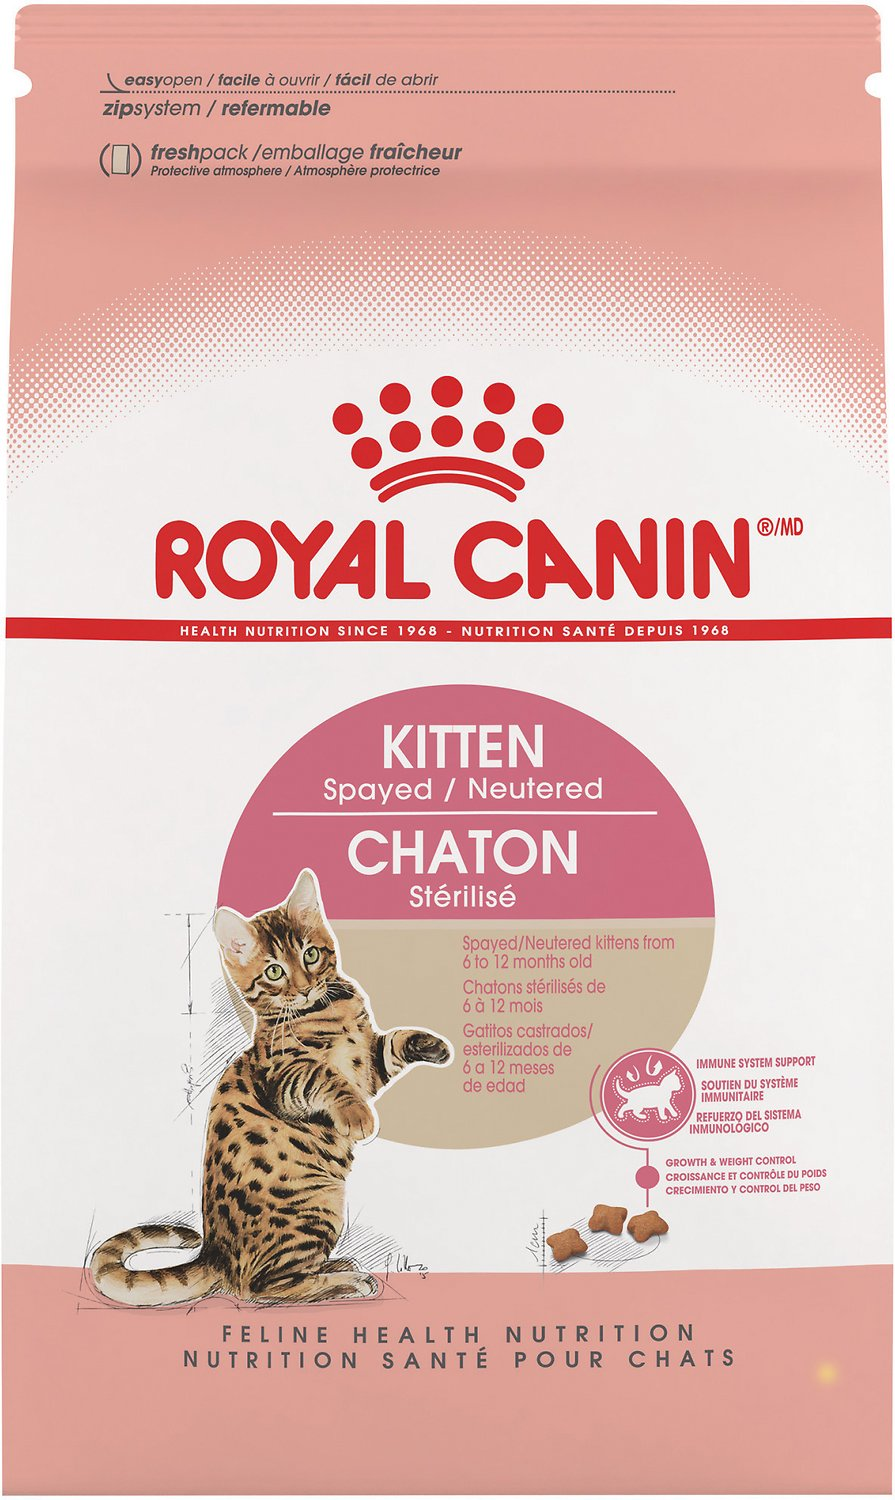 Royal Canin Spayed Neutered Cat Food